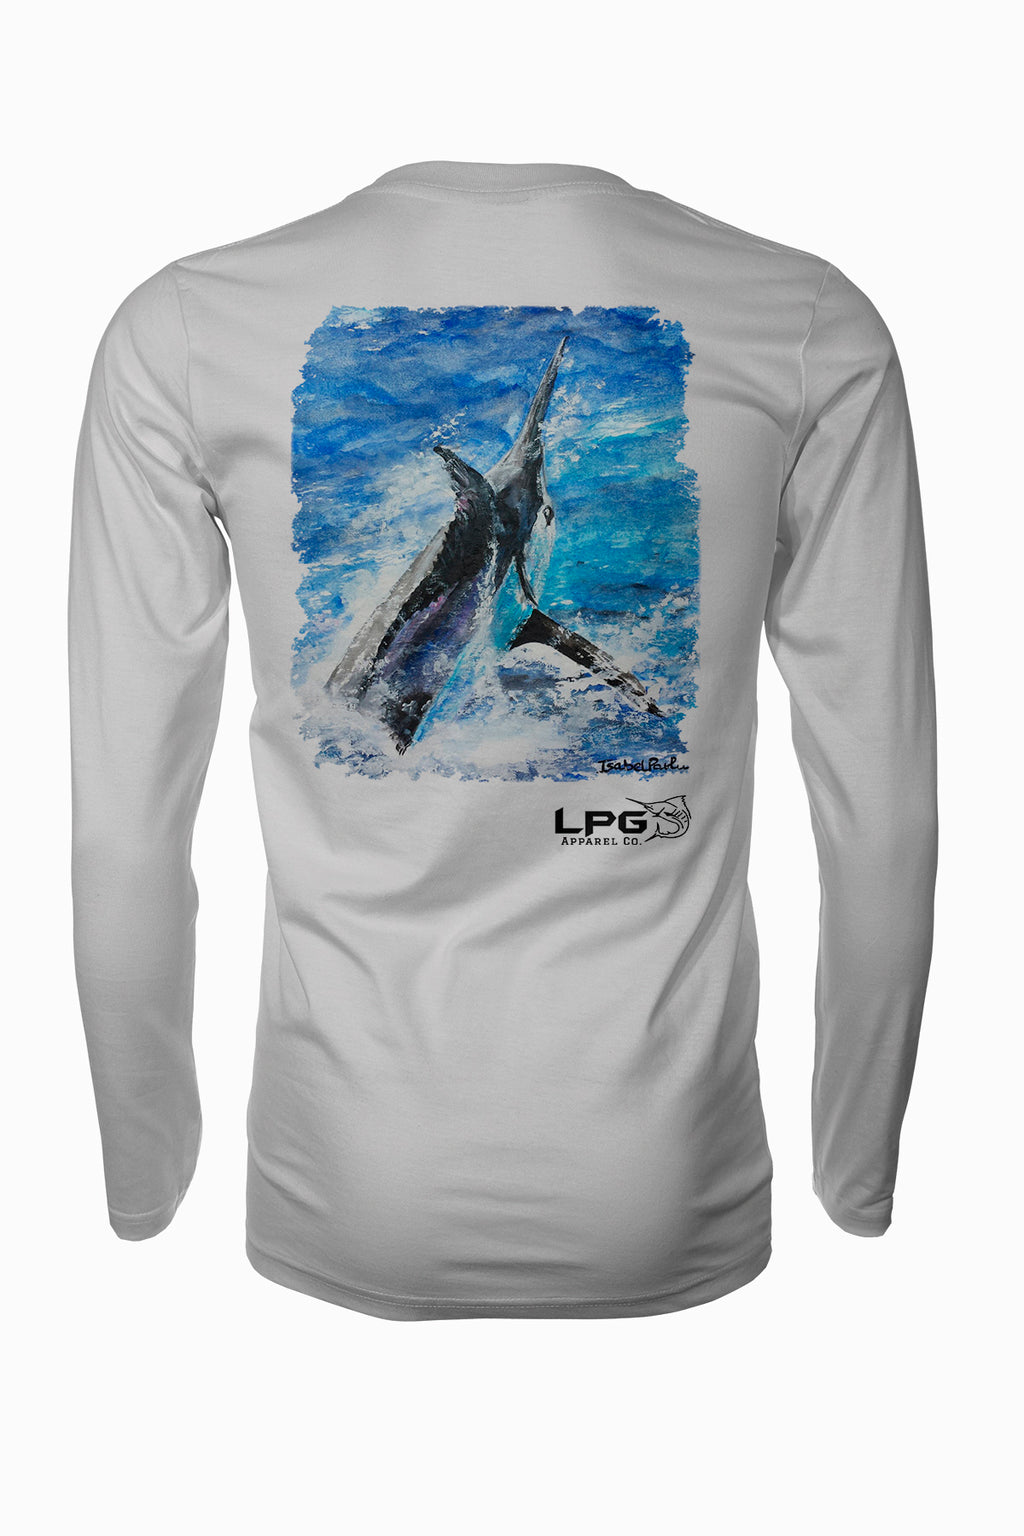 LPG Apparel Co. Marlin Grander Rash Guard LS Performance UPF 50+ Rashguard T-Shirt - Lobo Performance Gear